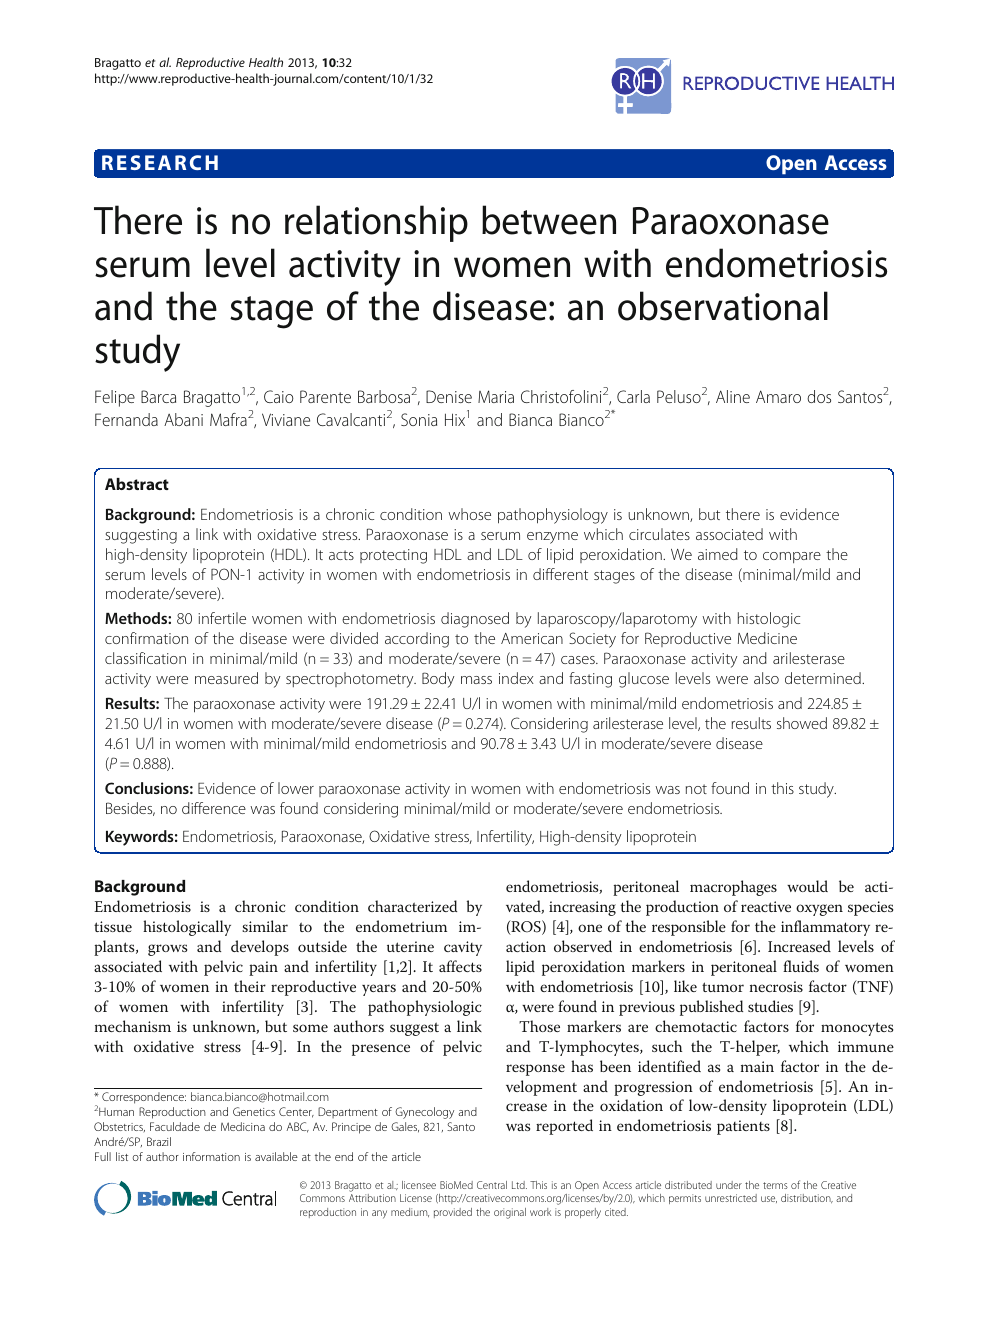 There Is No Relationship Between Paraoxonase Serum Level Activity In Women With Endometriosis And The Stage Of The Disease An Observational Study Topic Of Research Paper In Basic Medicine Download Scholarly